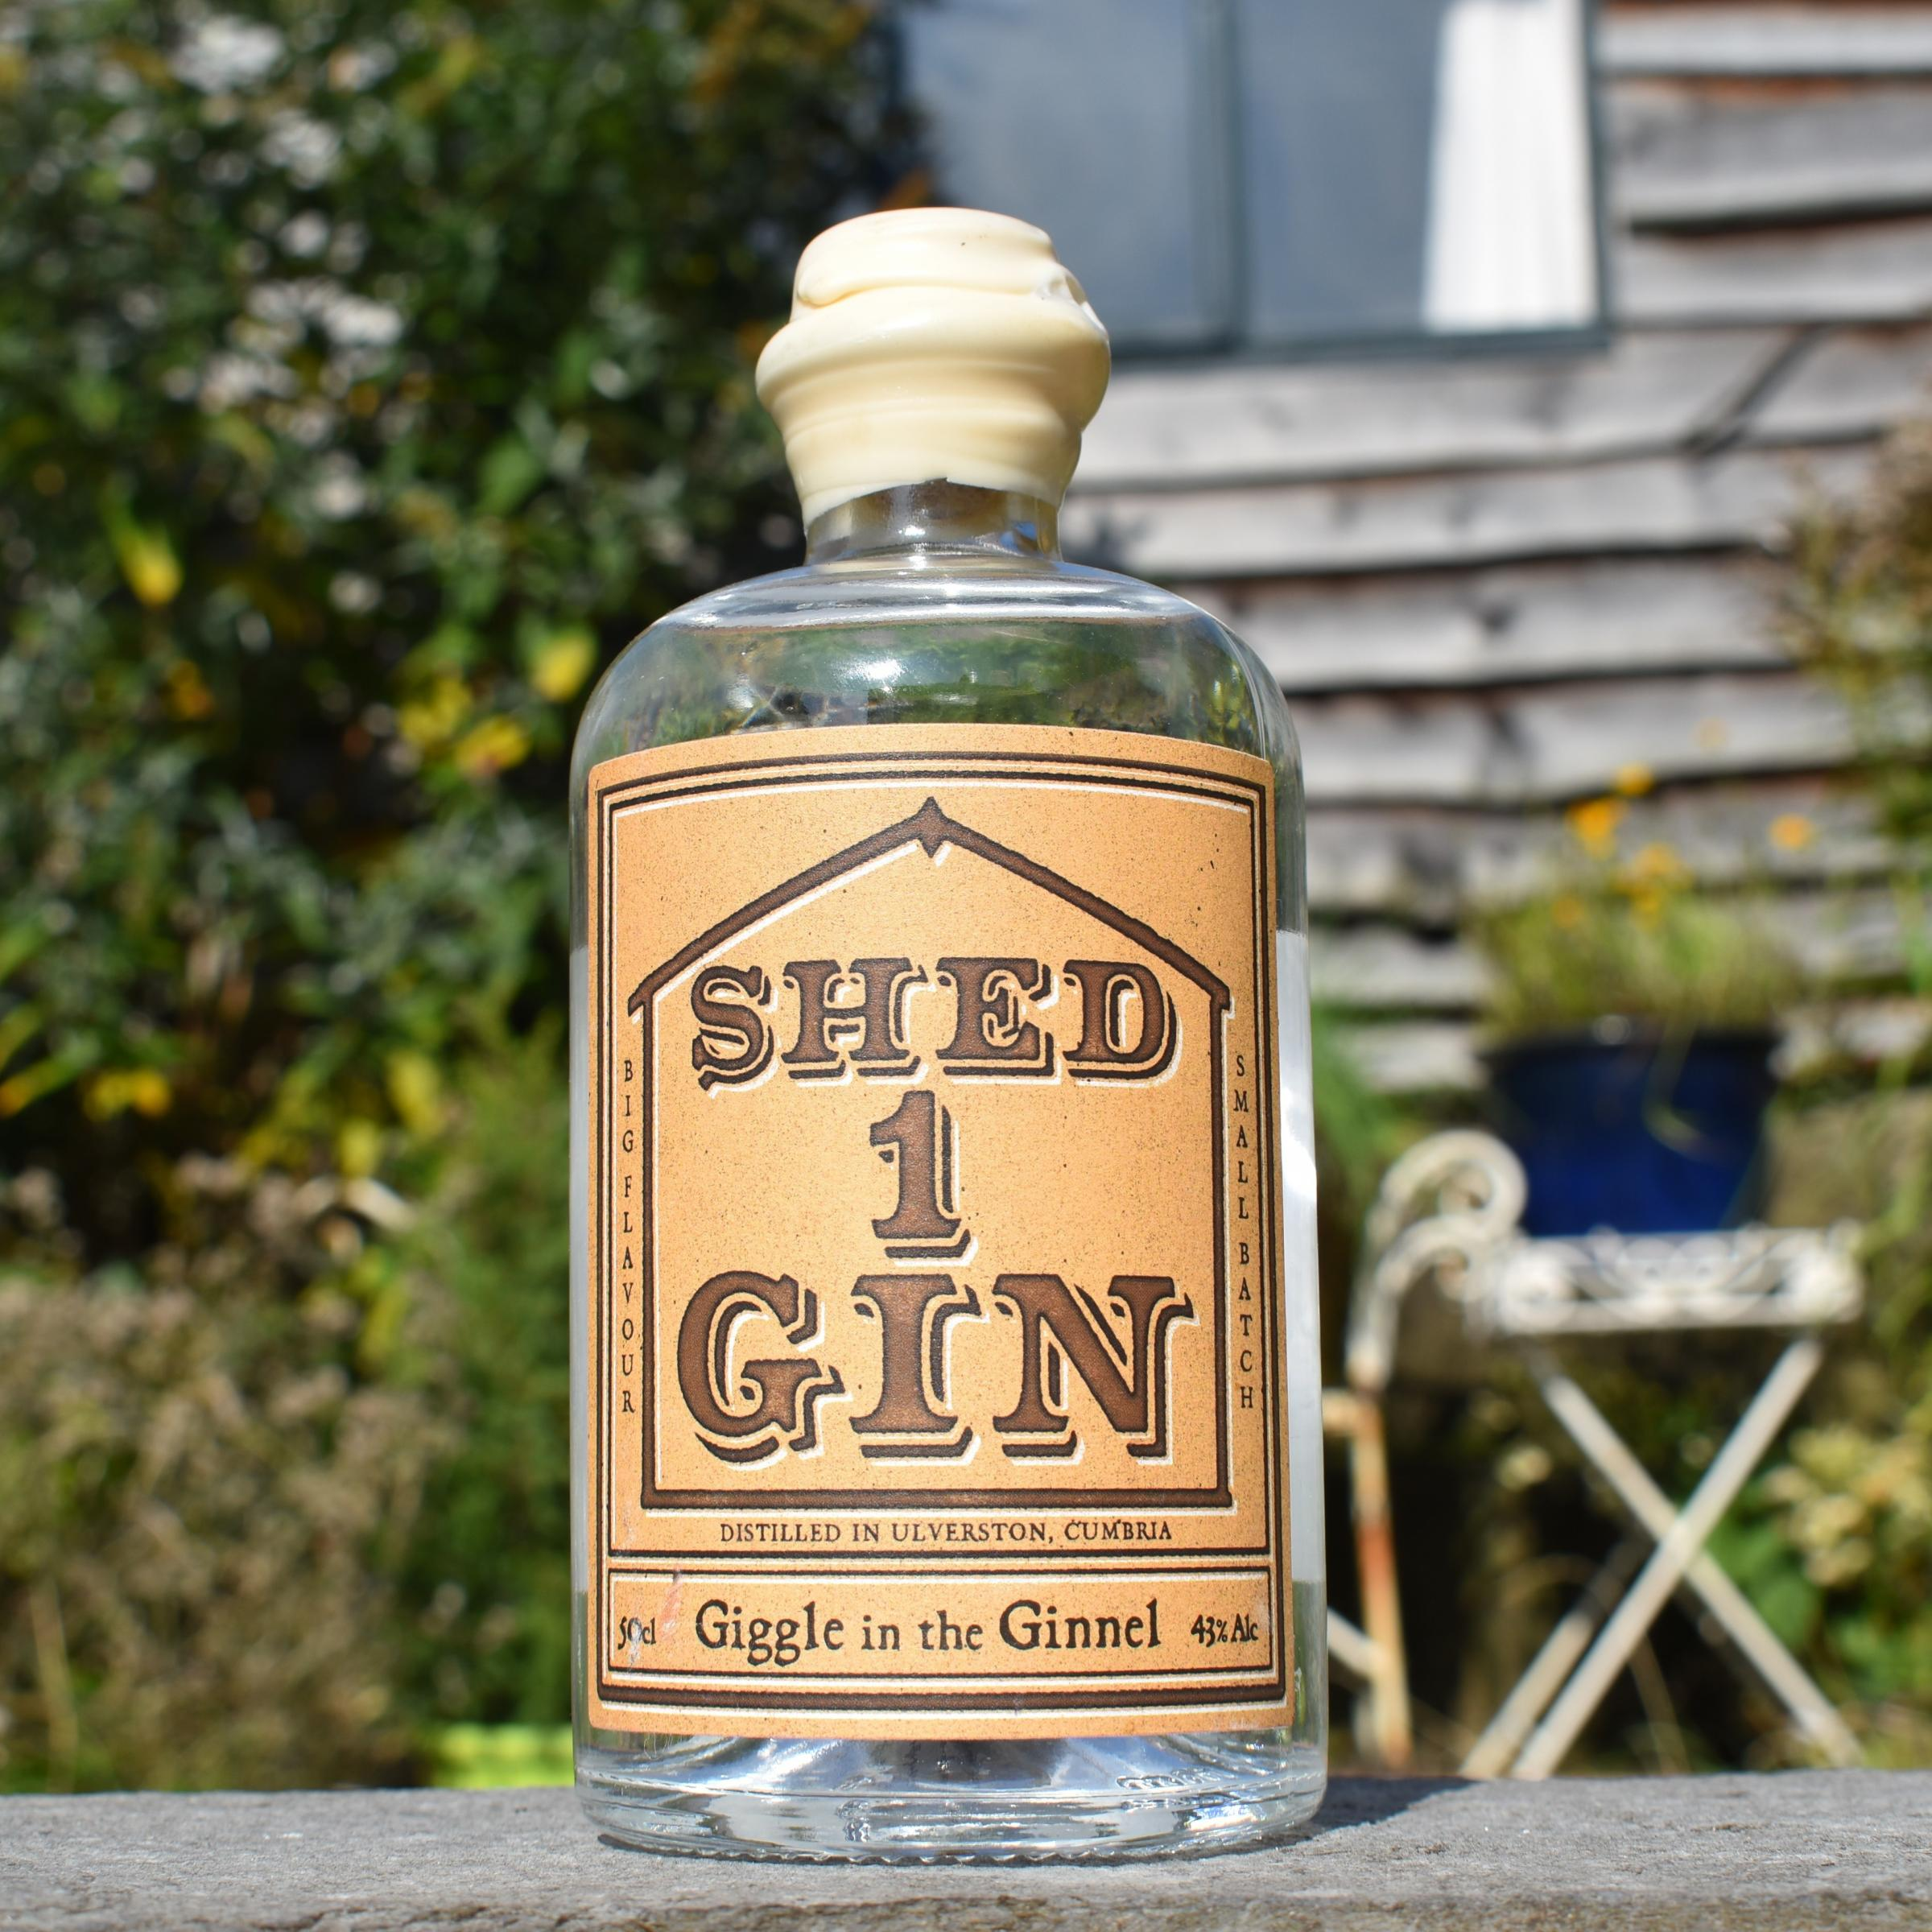 South Lakes gin company recognised in competition